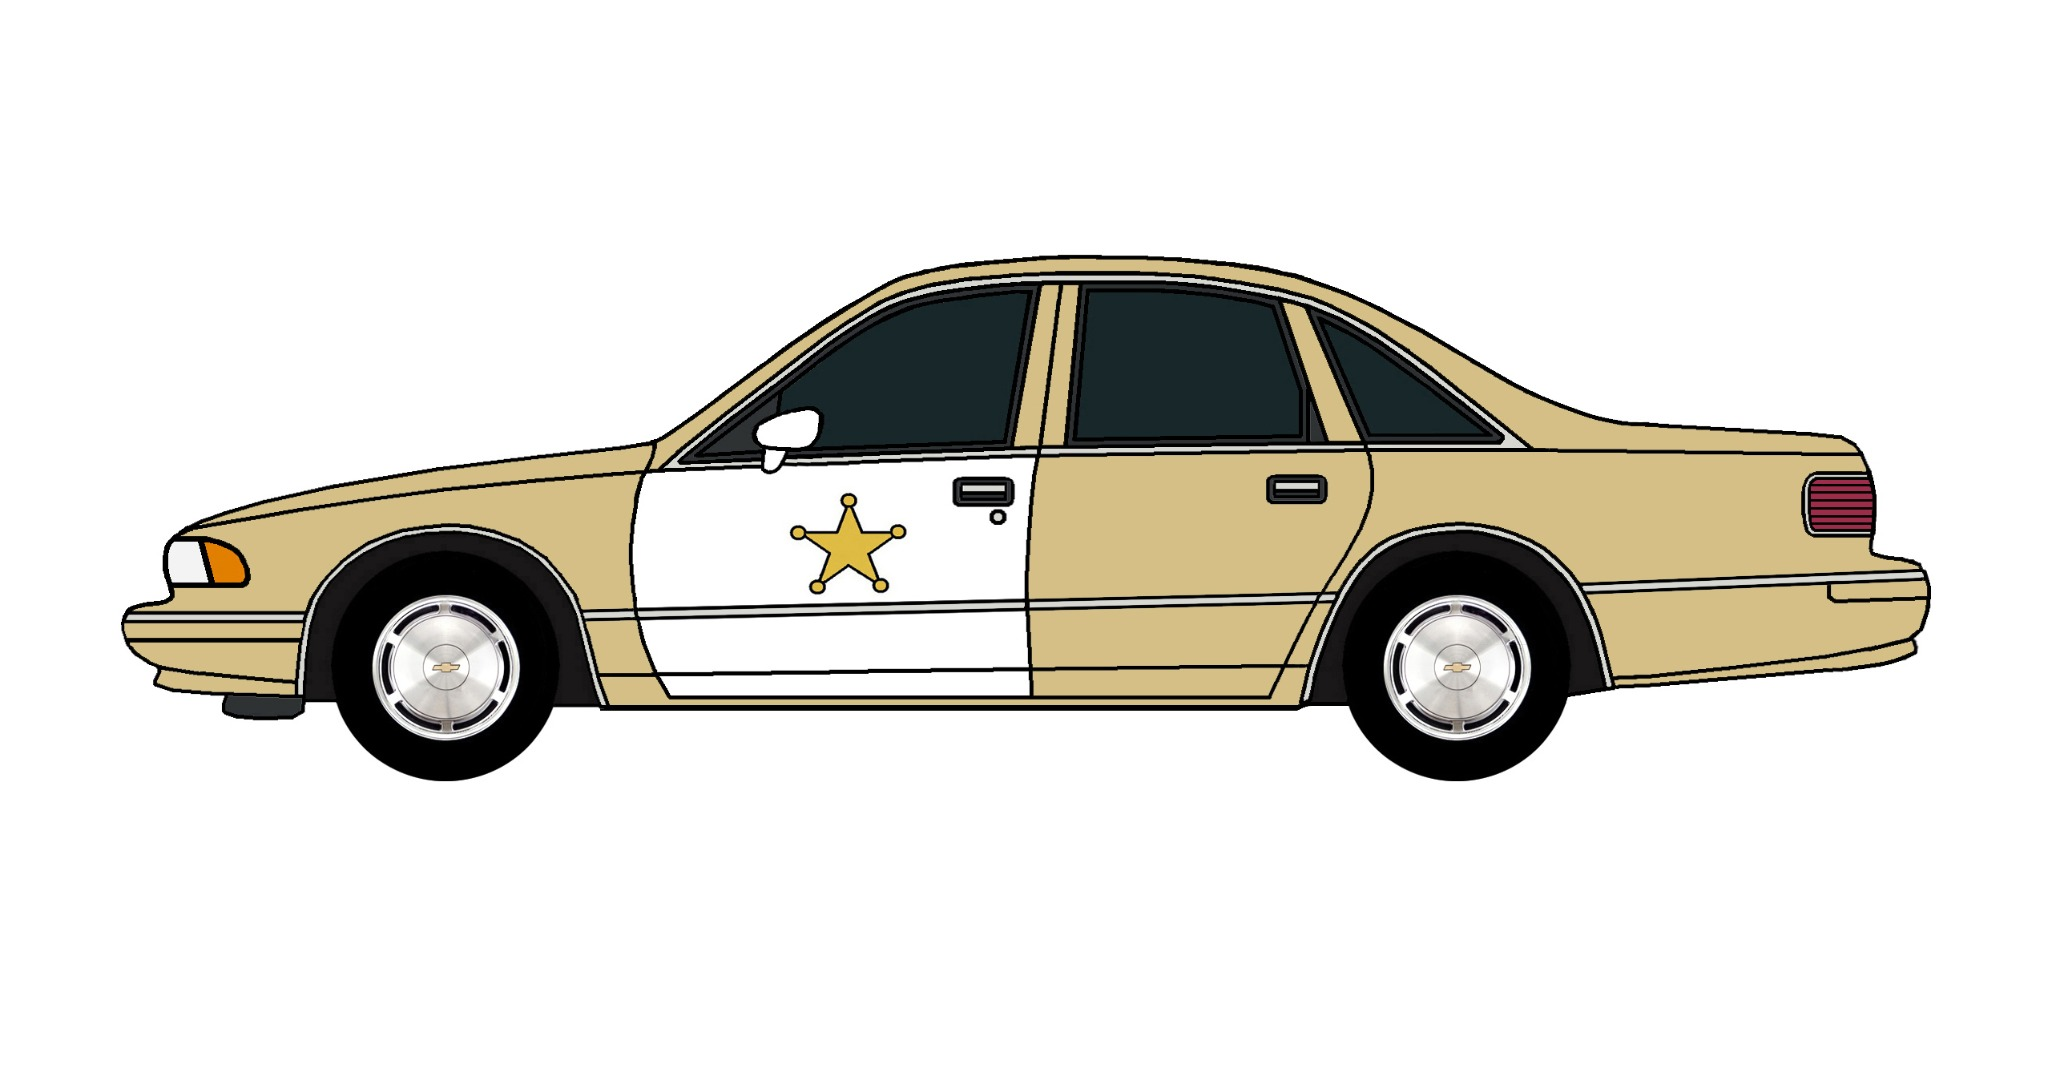 1994 Chevy Caprice Police Car TAN